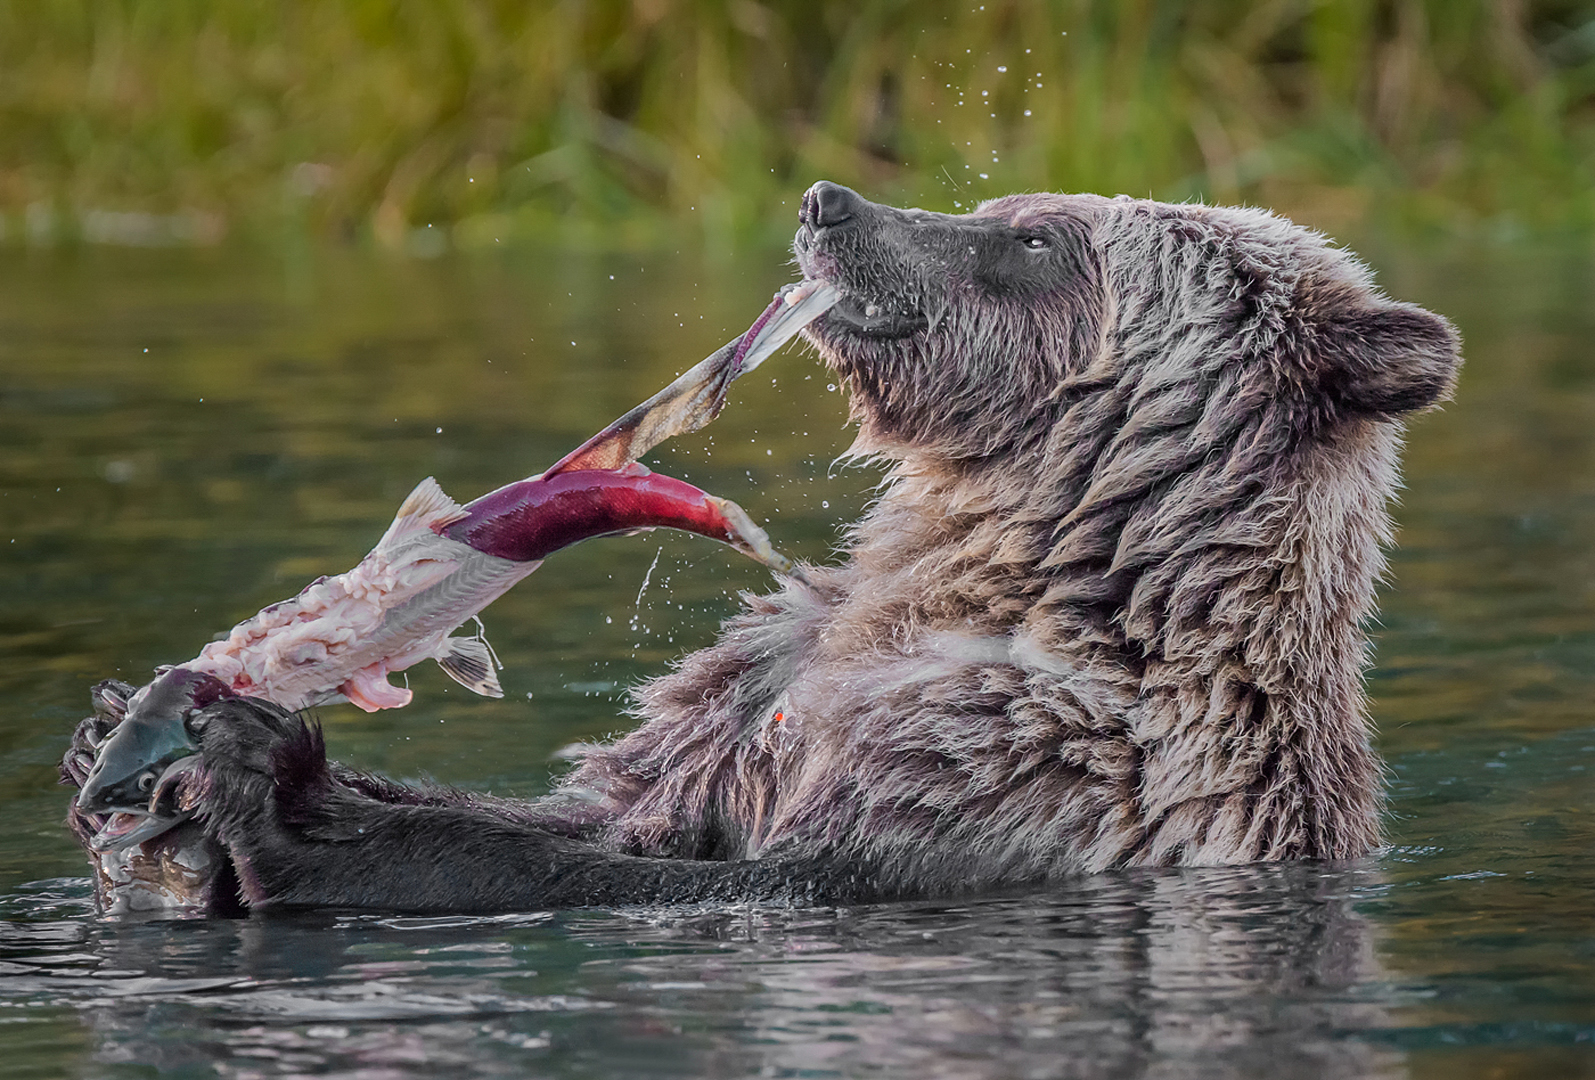 Grizzly Sow Eating Salmon